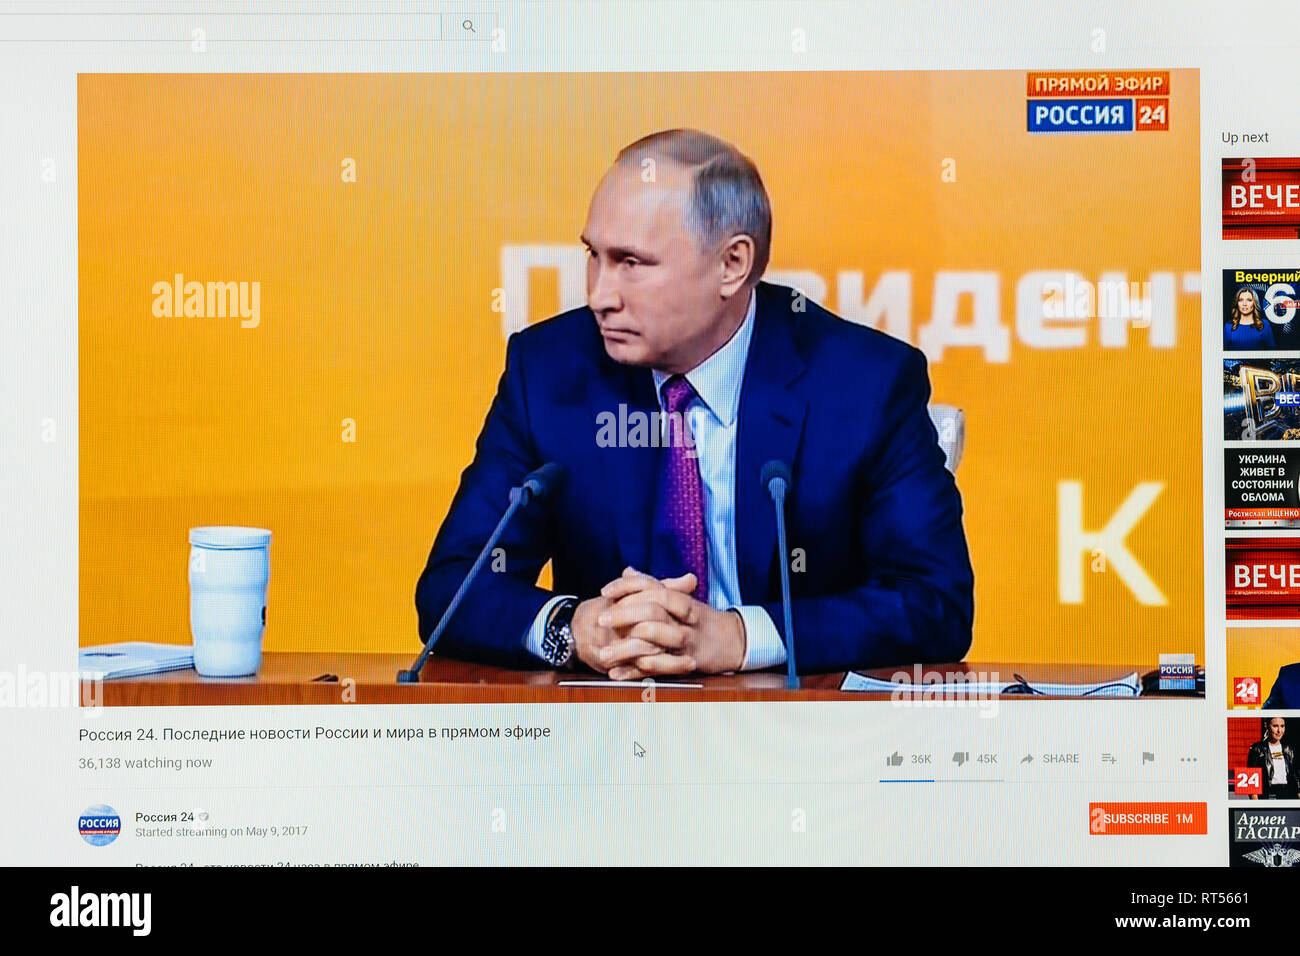 PARIS, FRANCE - DEC 14, 2017: Watching on Youtube live channel of Rossiya RTR as the Russian President Vladimir Putin give final media Q&A before March election - Stock Image